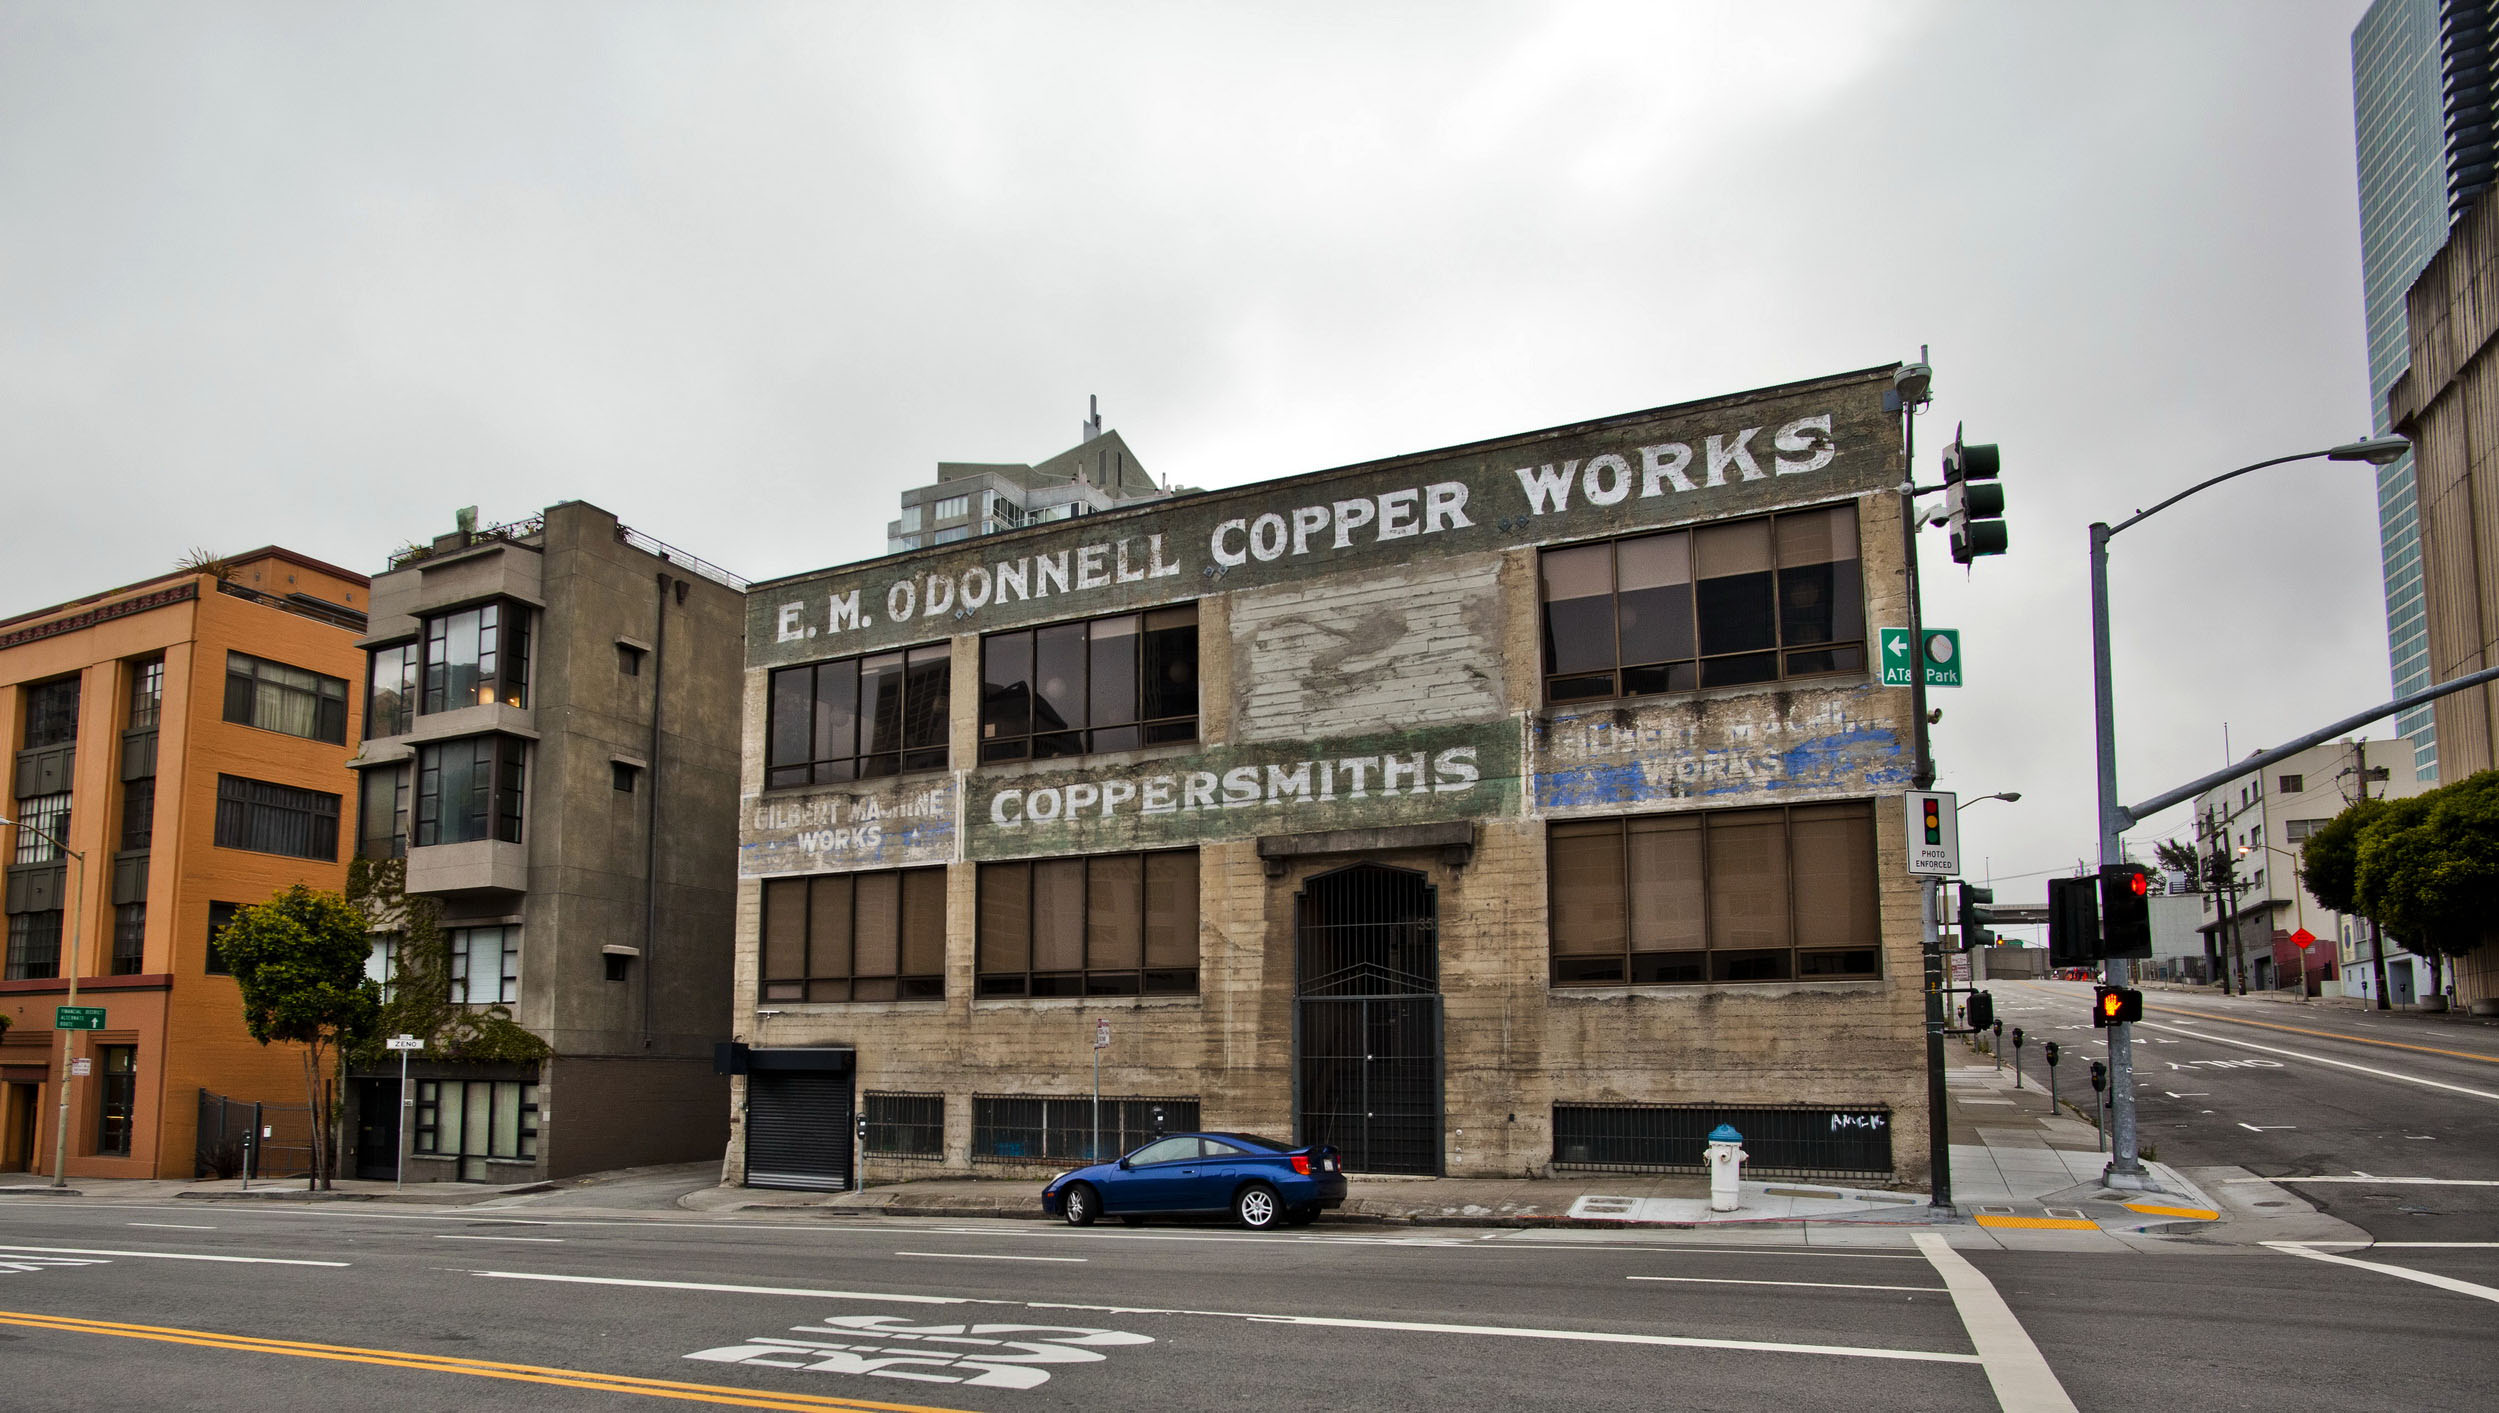 Architecture along Folsom St EM O Donnell Copper Works Coppersmiths Bldg San Francisco CA 01